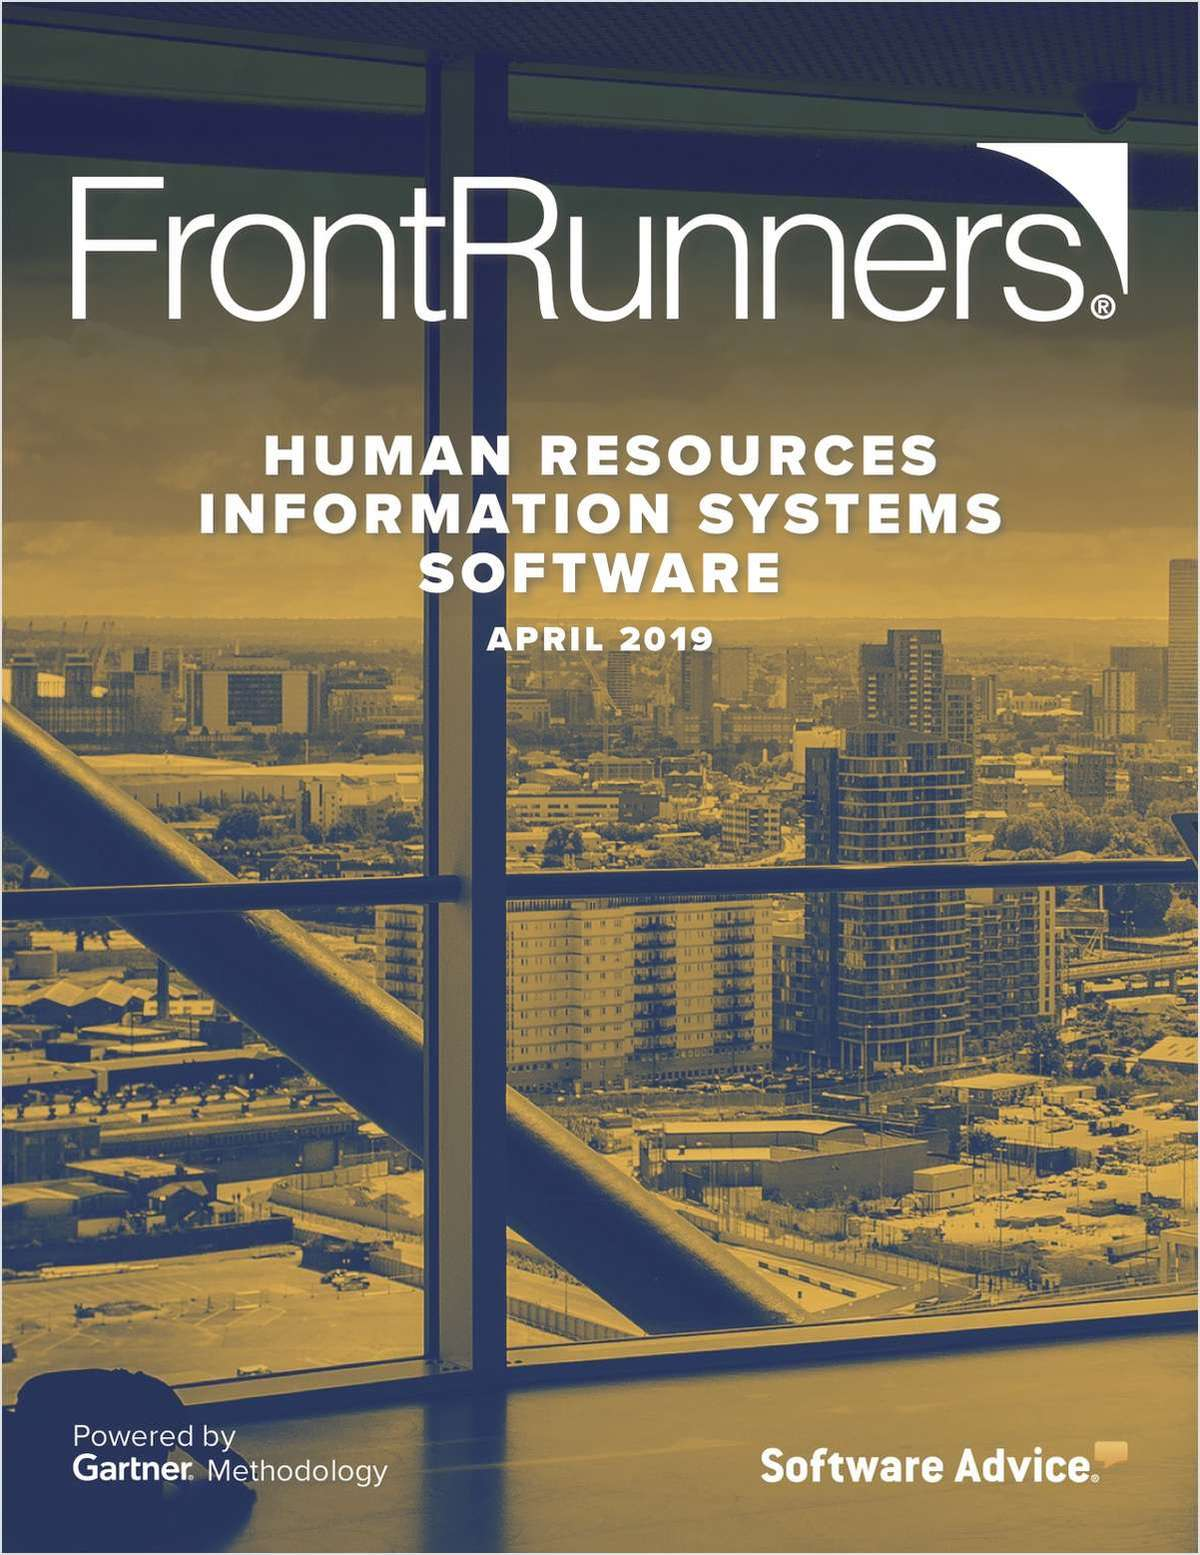 Top Rated FrontRunners for Human Resources Software